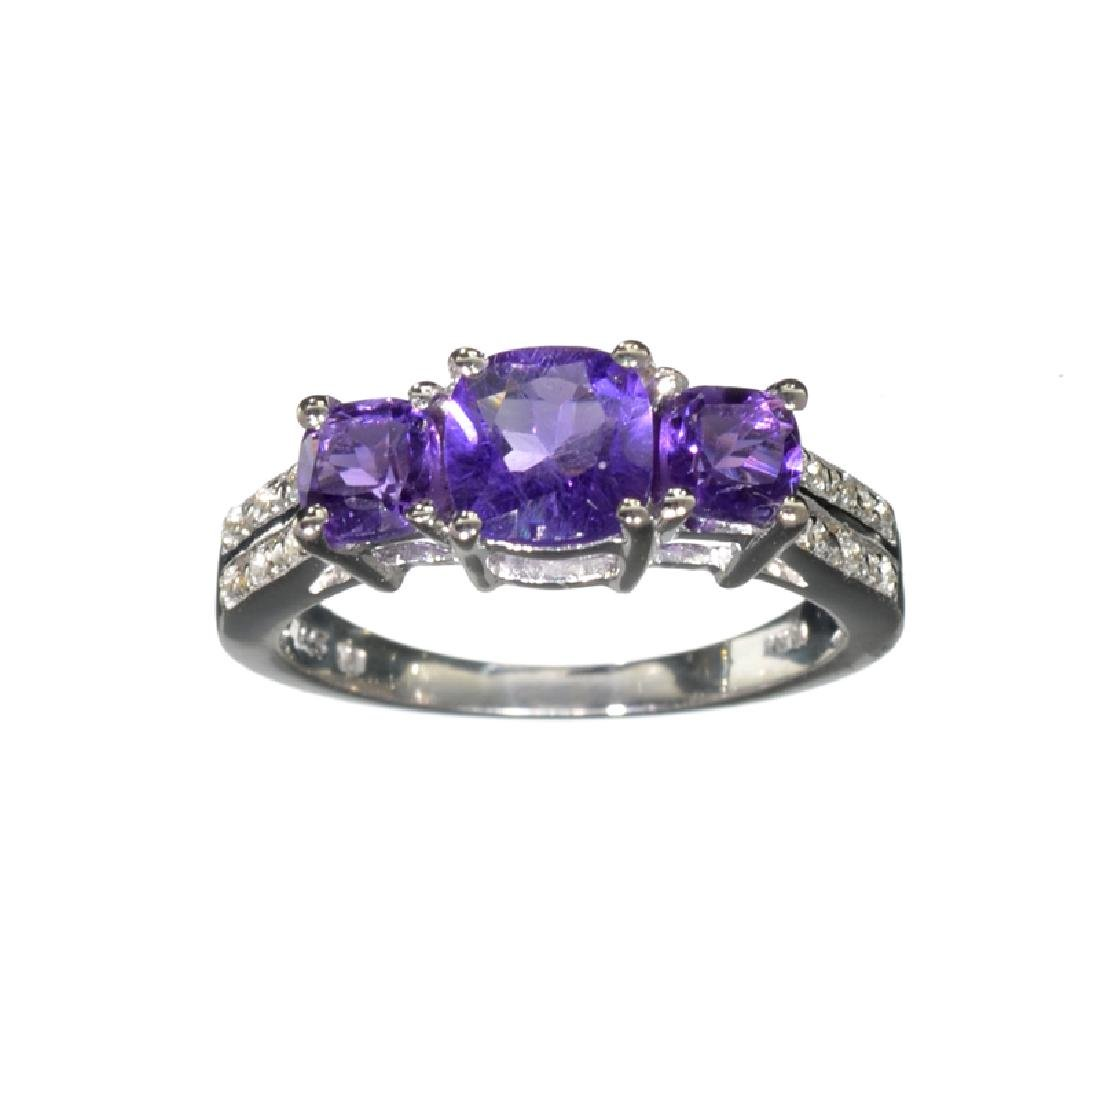 APP: 0.5k Fine Jewelry 1.54CT Purple Amethyst And White